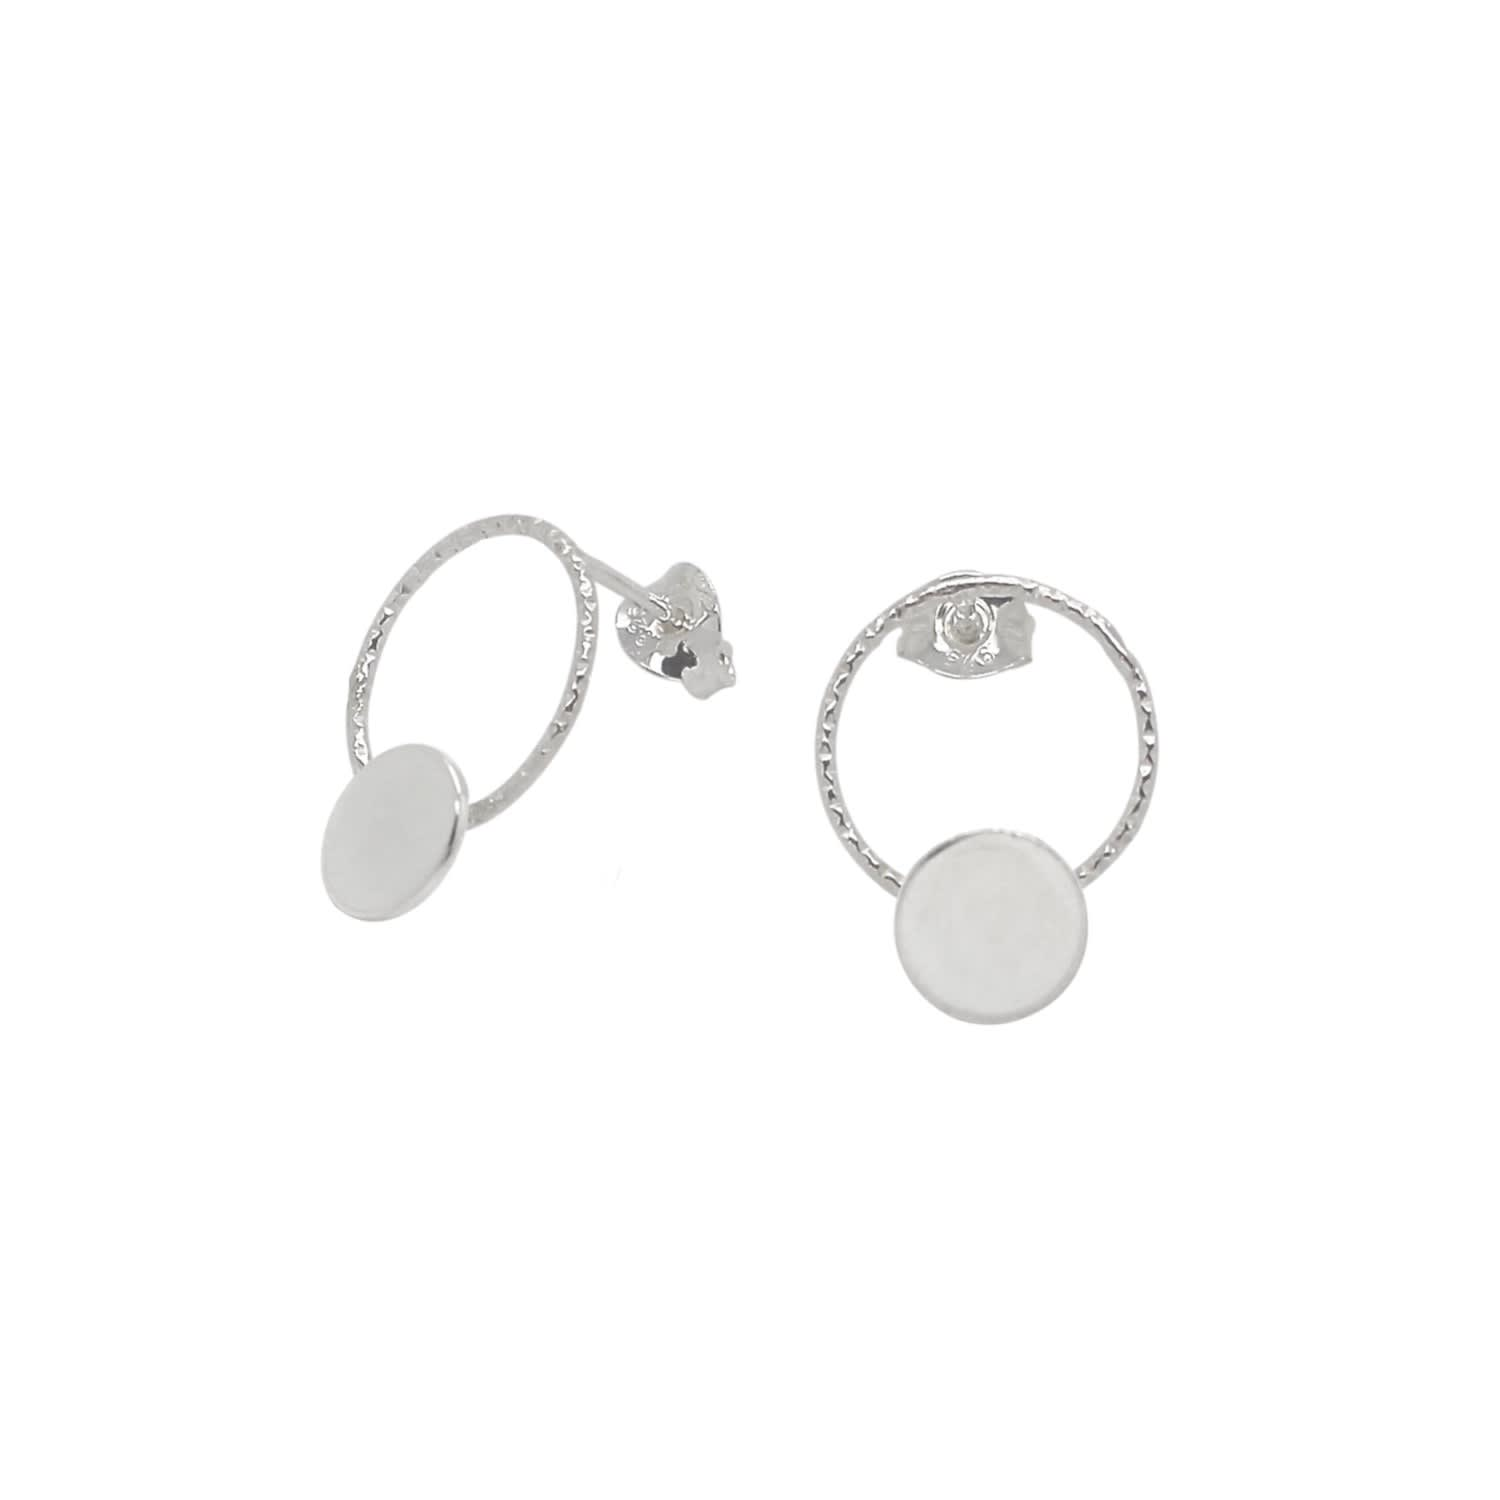 4e0d2a66faa91 Large Circle & Disc Stud Earrings Sterling Silver by Lucy Ashton Jewellery